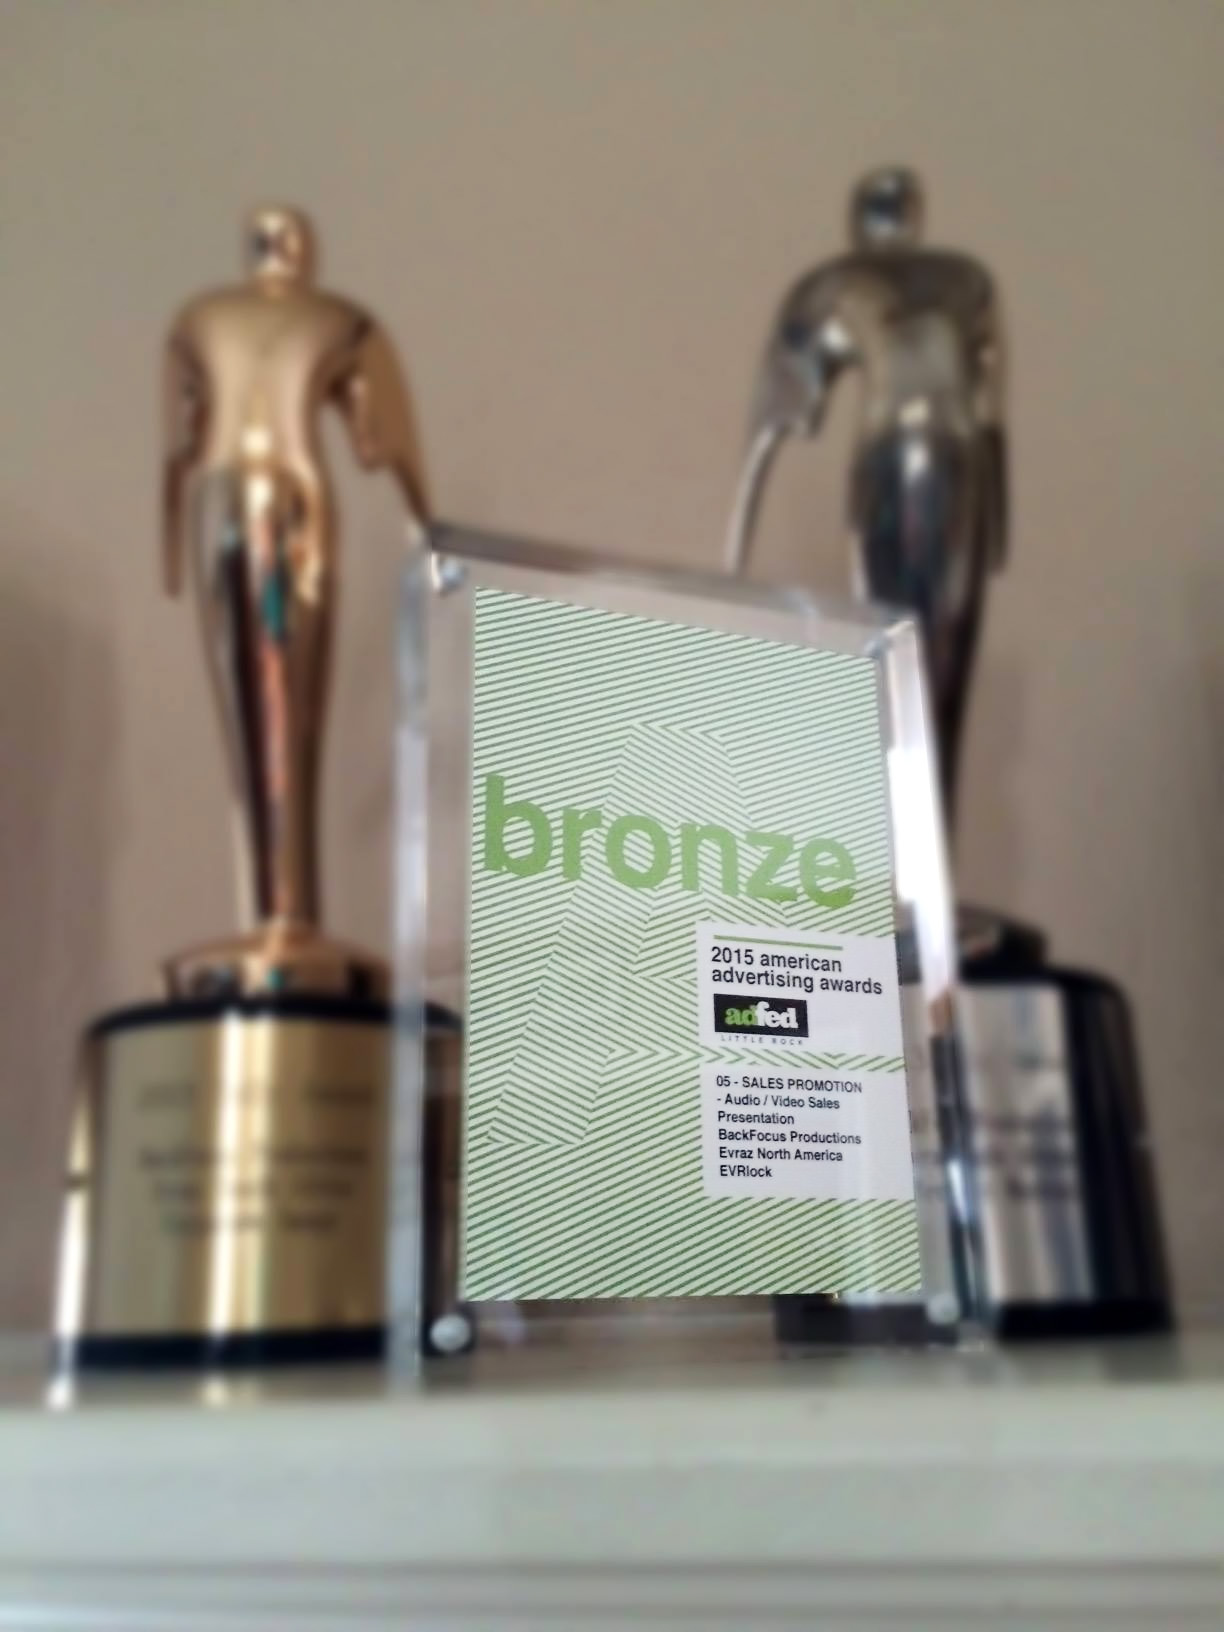 Our new AAF award will keep the Telly's company on the mantle.